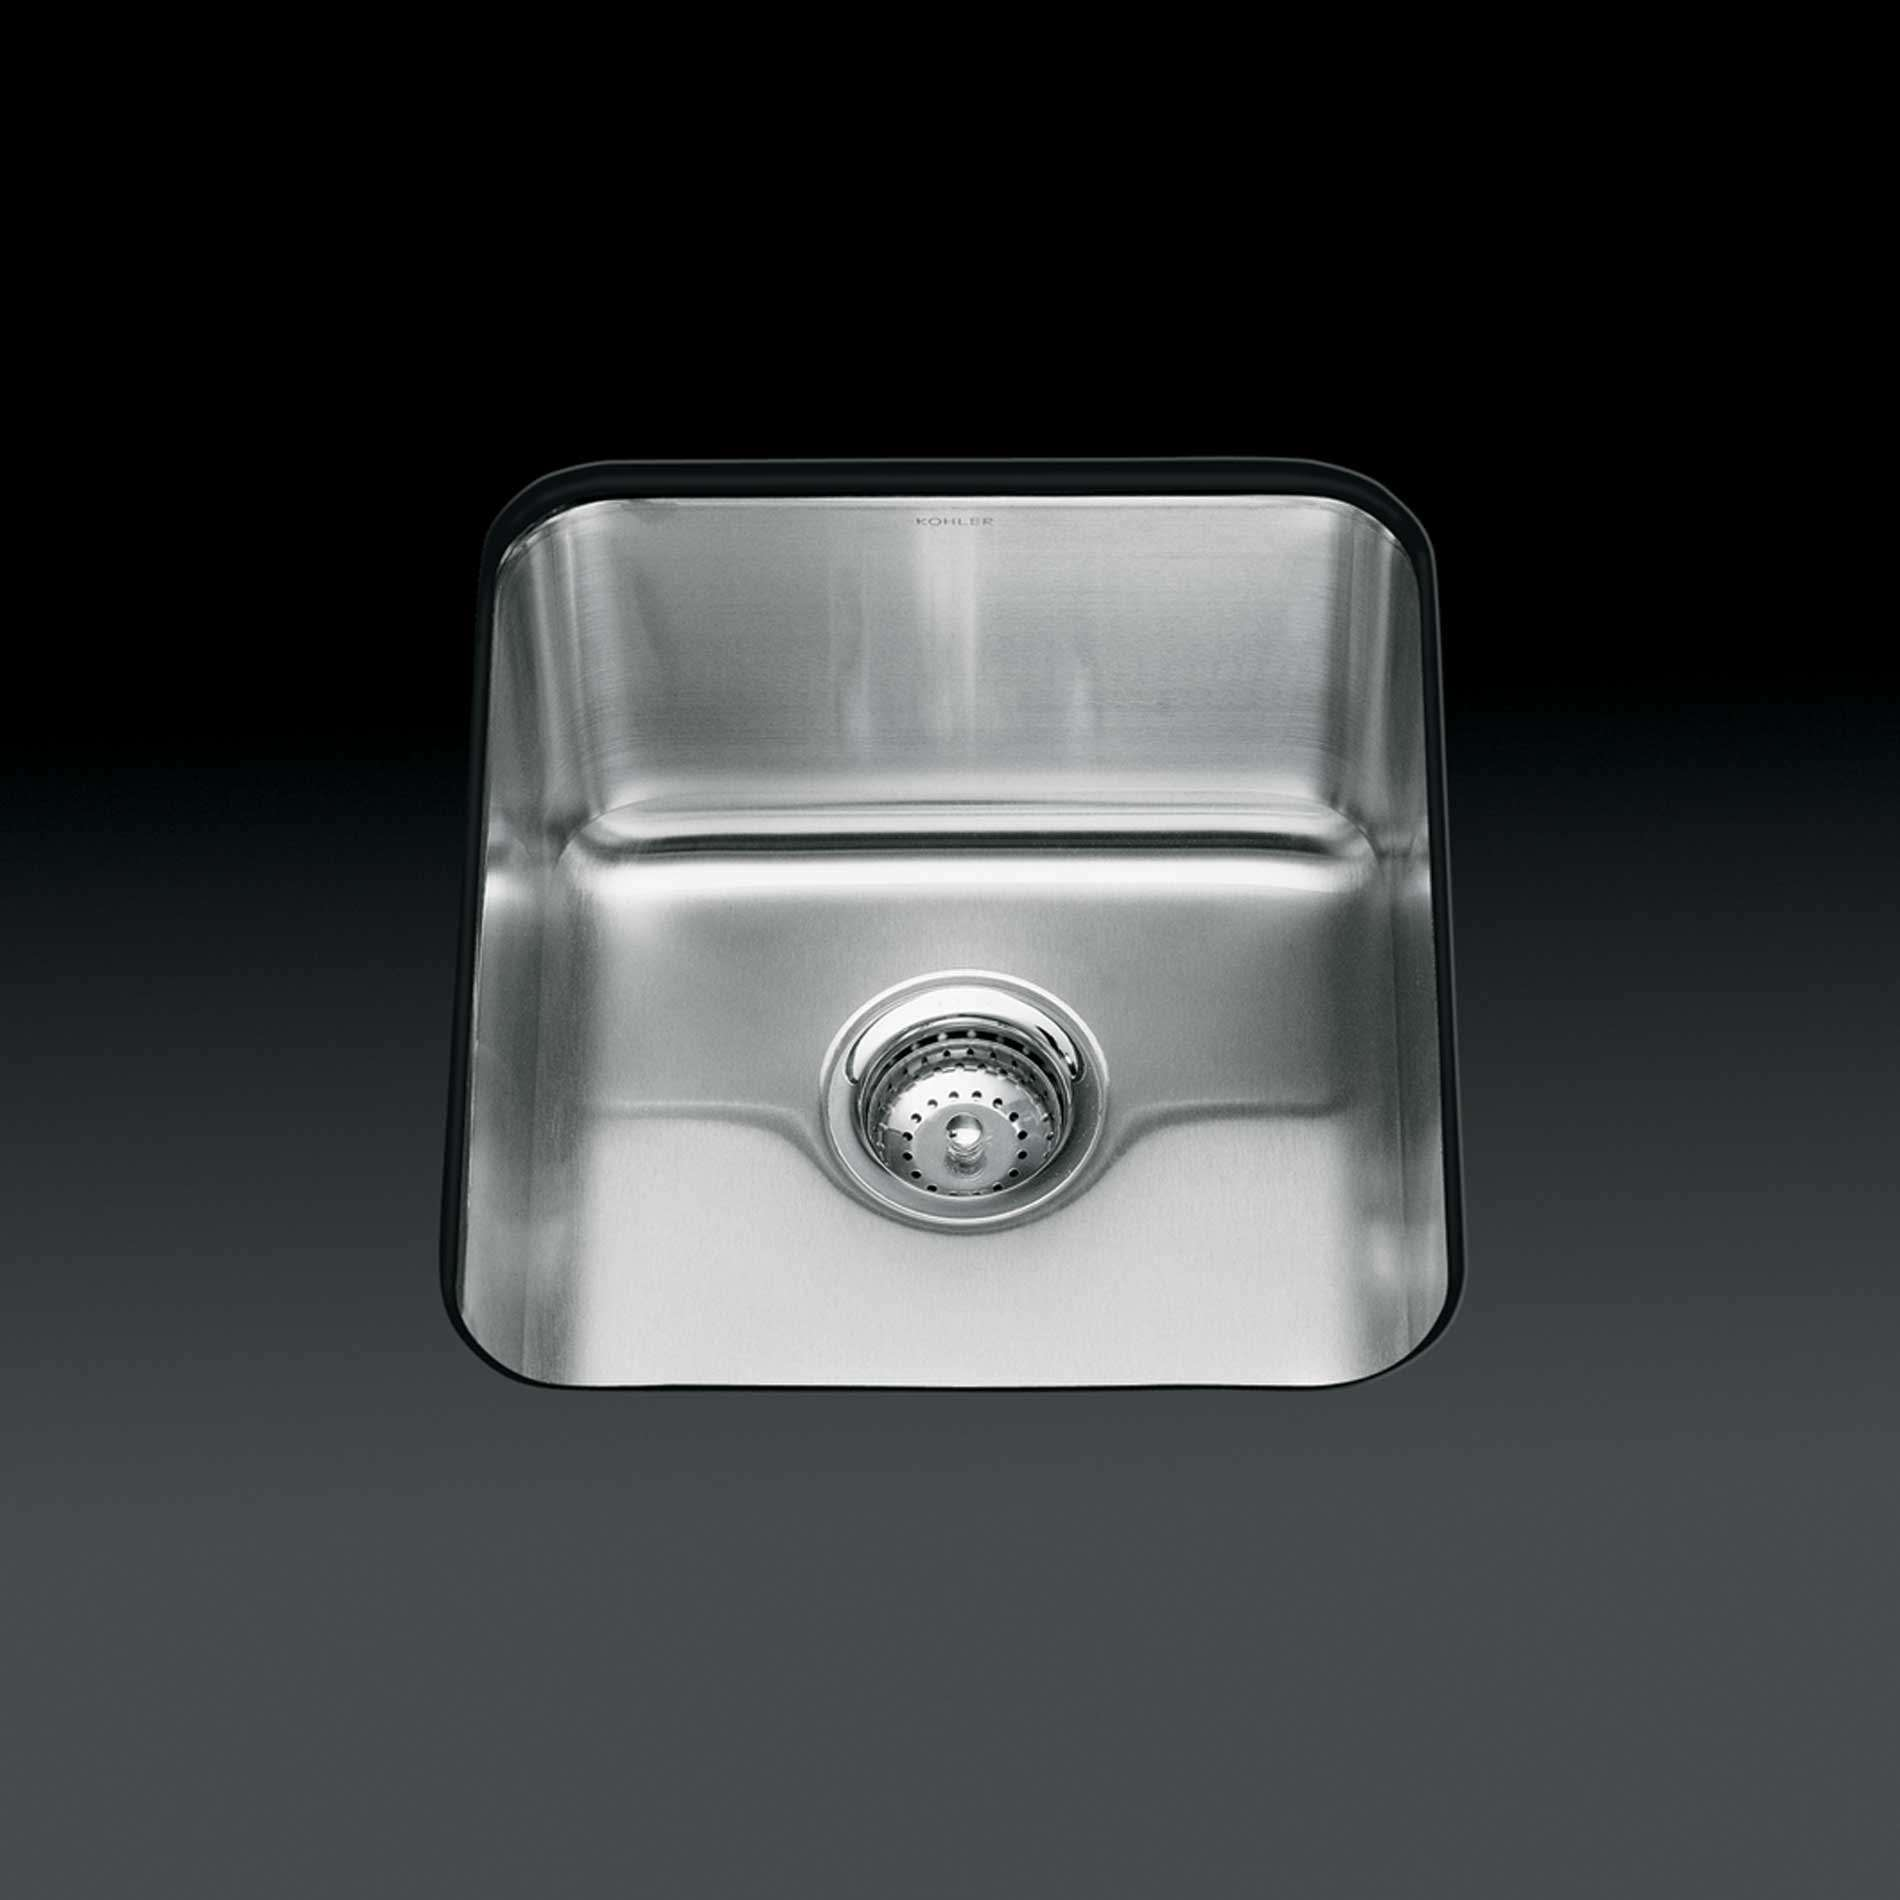 Picture of Icerock 3330 Stainless Steel Sink